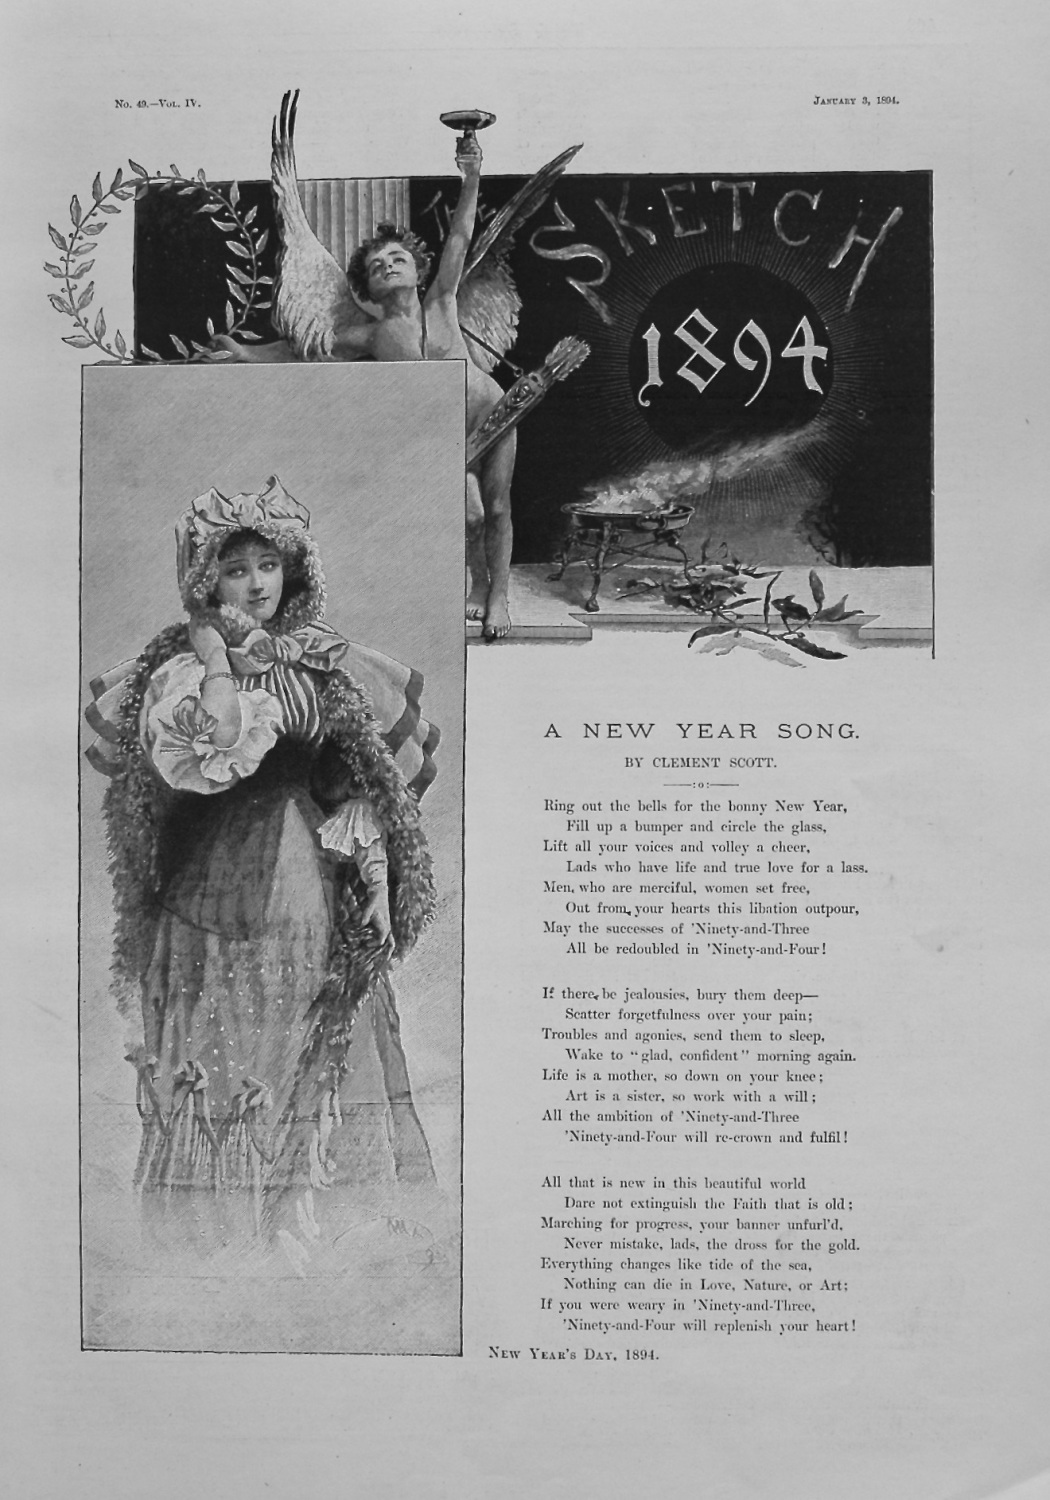 A New Year Song. By Clement Scott. 1894.